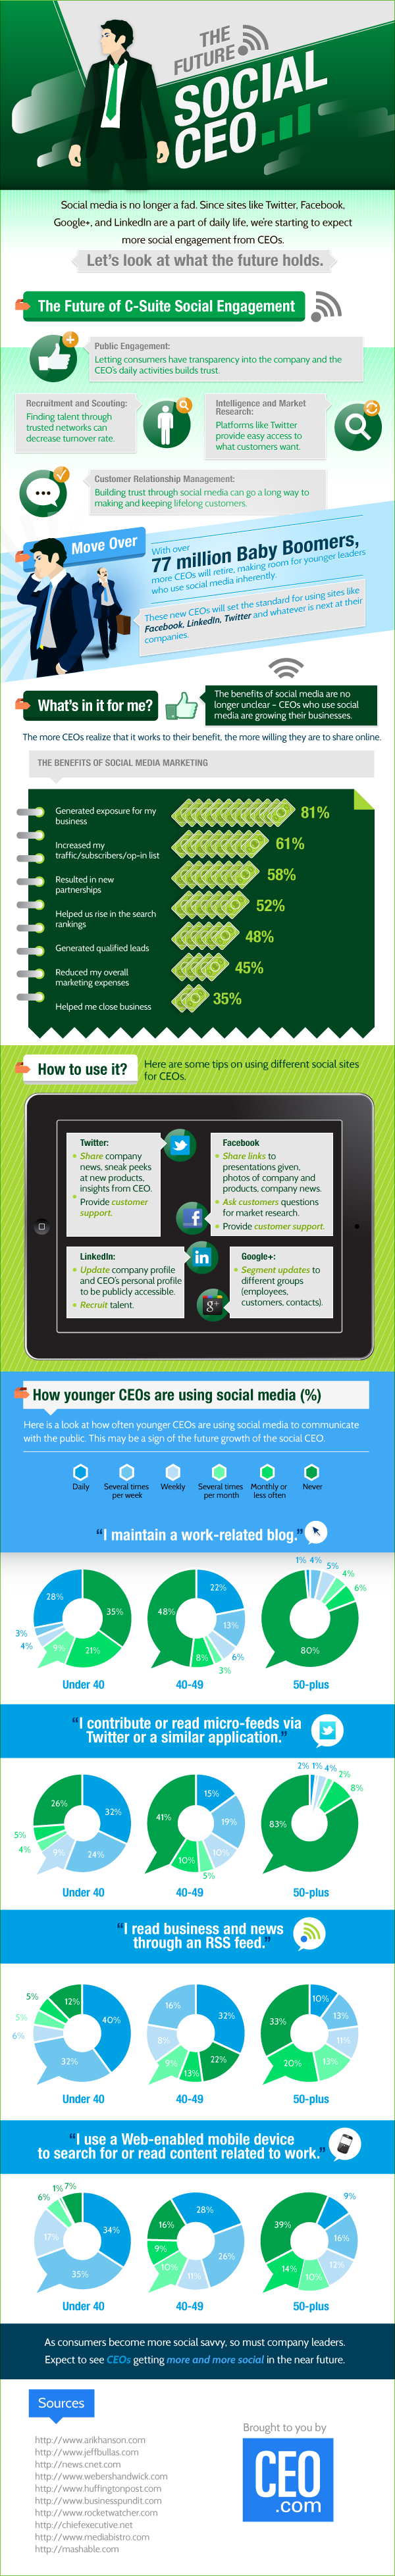 The Future Social #CEO. #infographic